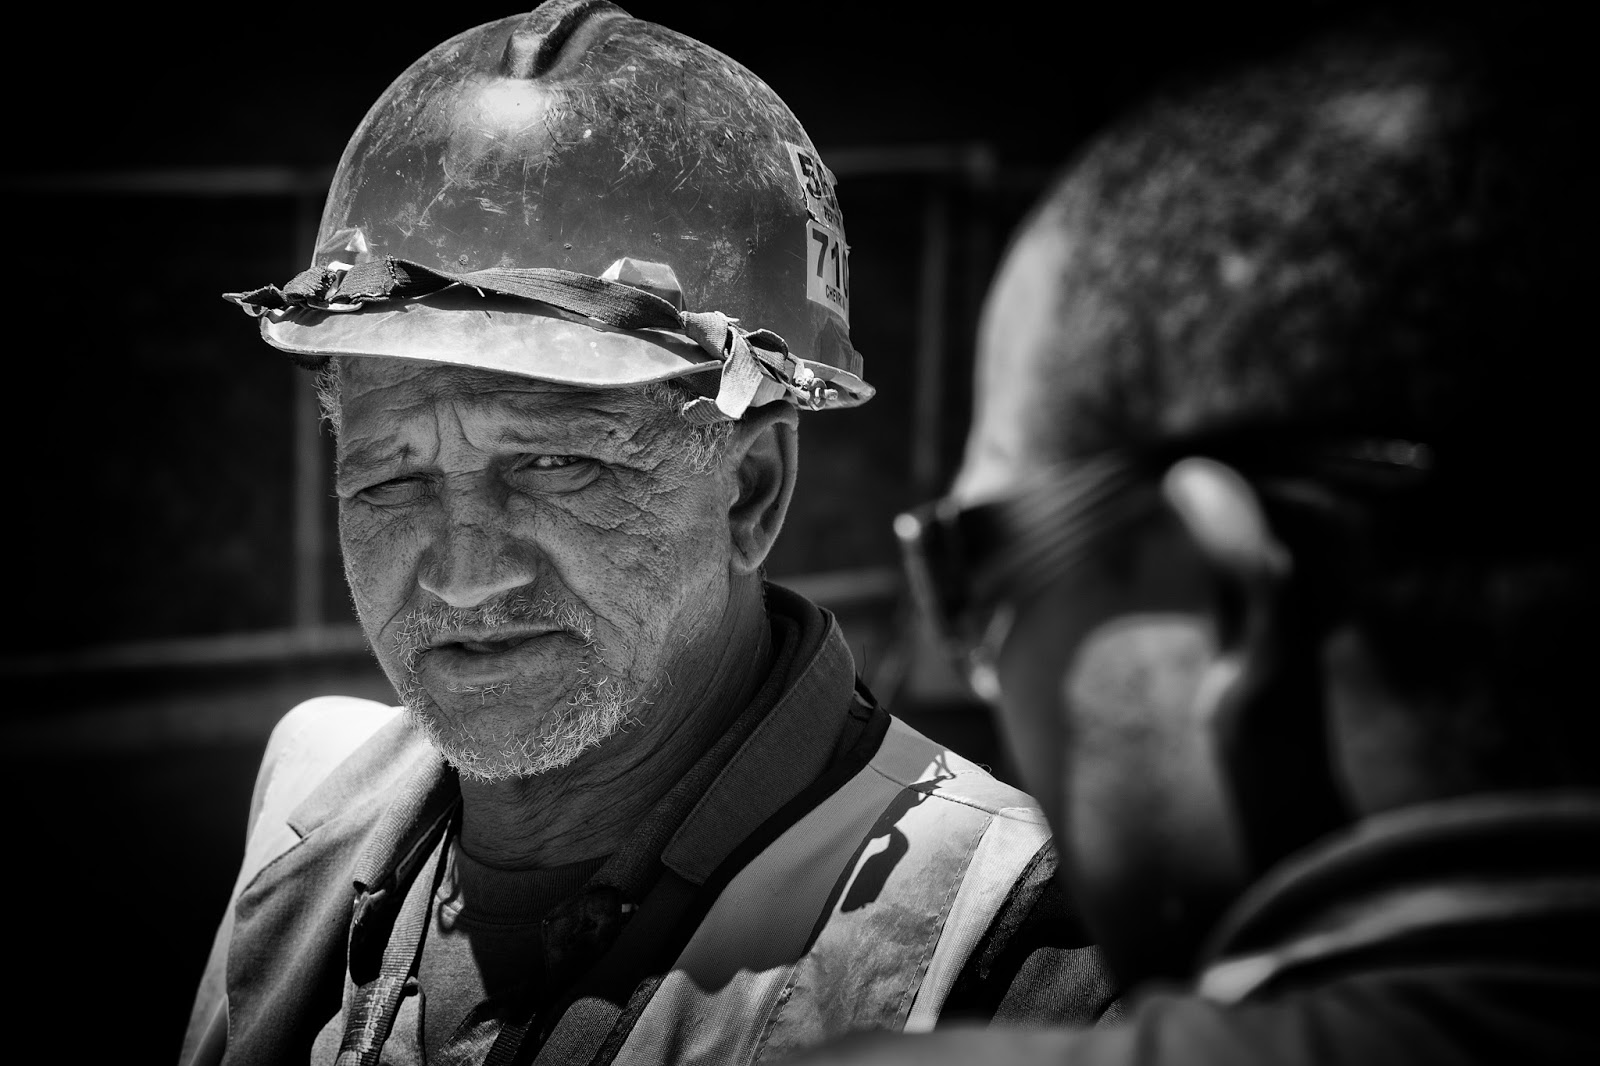 A candid street portrait of a construction worker shot in Cape Town South Africa